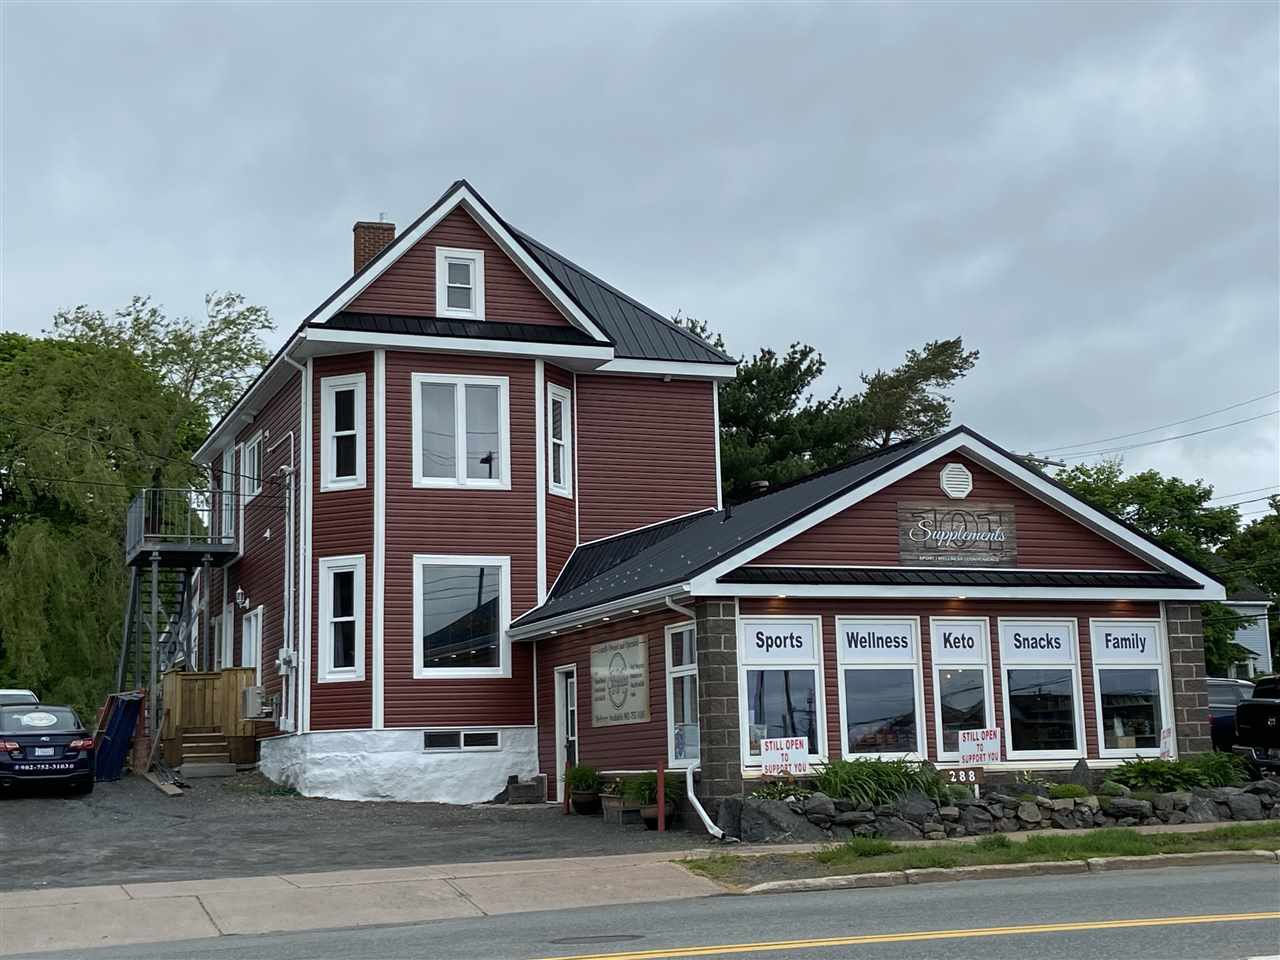 Main Photo: 288 South Foord Street in Stellarton: 106-New Glasgow, Stellarton Residential for sale (Northern Region)  : MLS®# 202010506